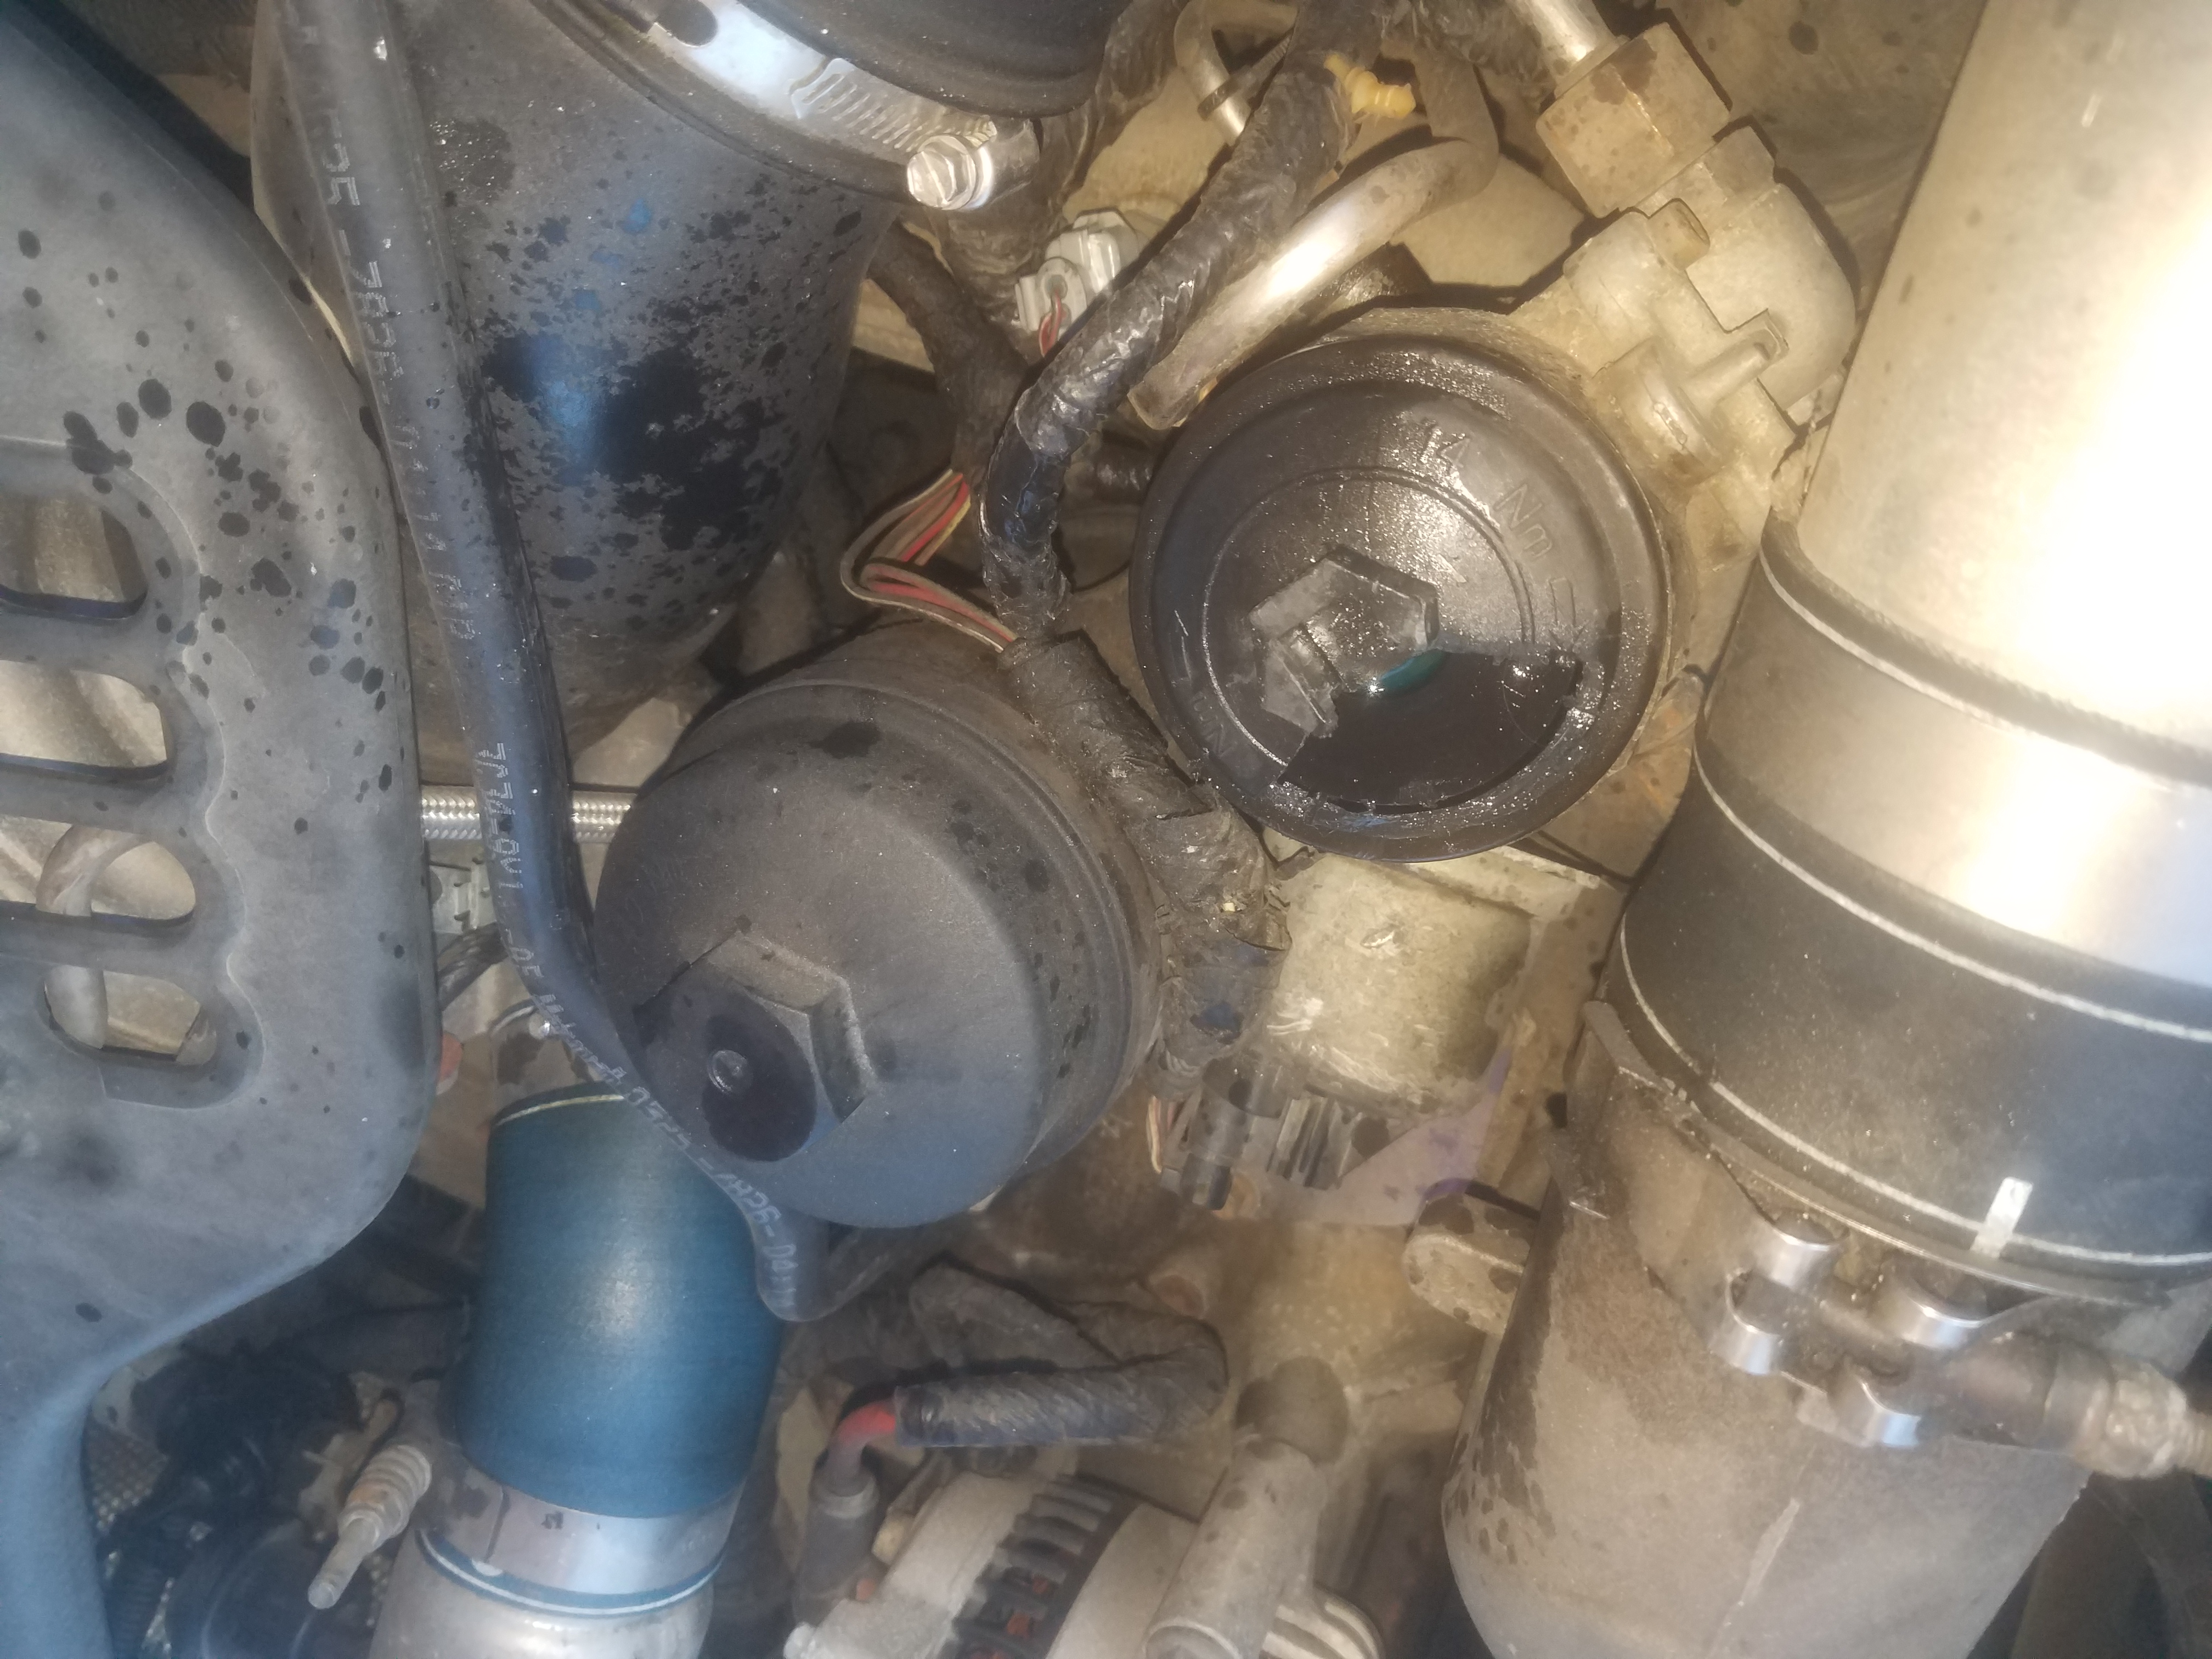 Fuel Filter Cap Broken Help Getting It Off Ford Powerstroke 2003 6 0 Filters Click Image For Larger Version Name 20171227 160204 1514412495325 Views 140 Size 309